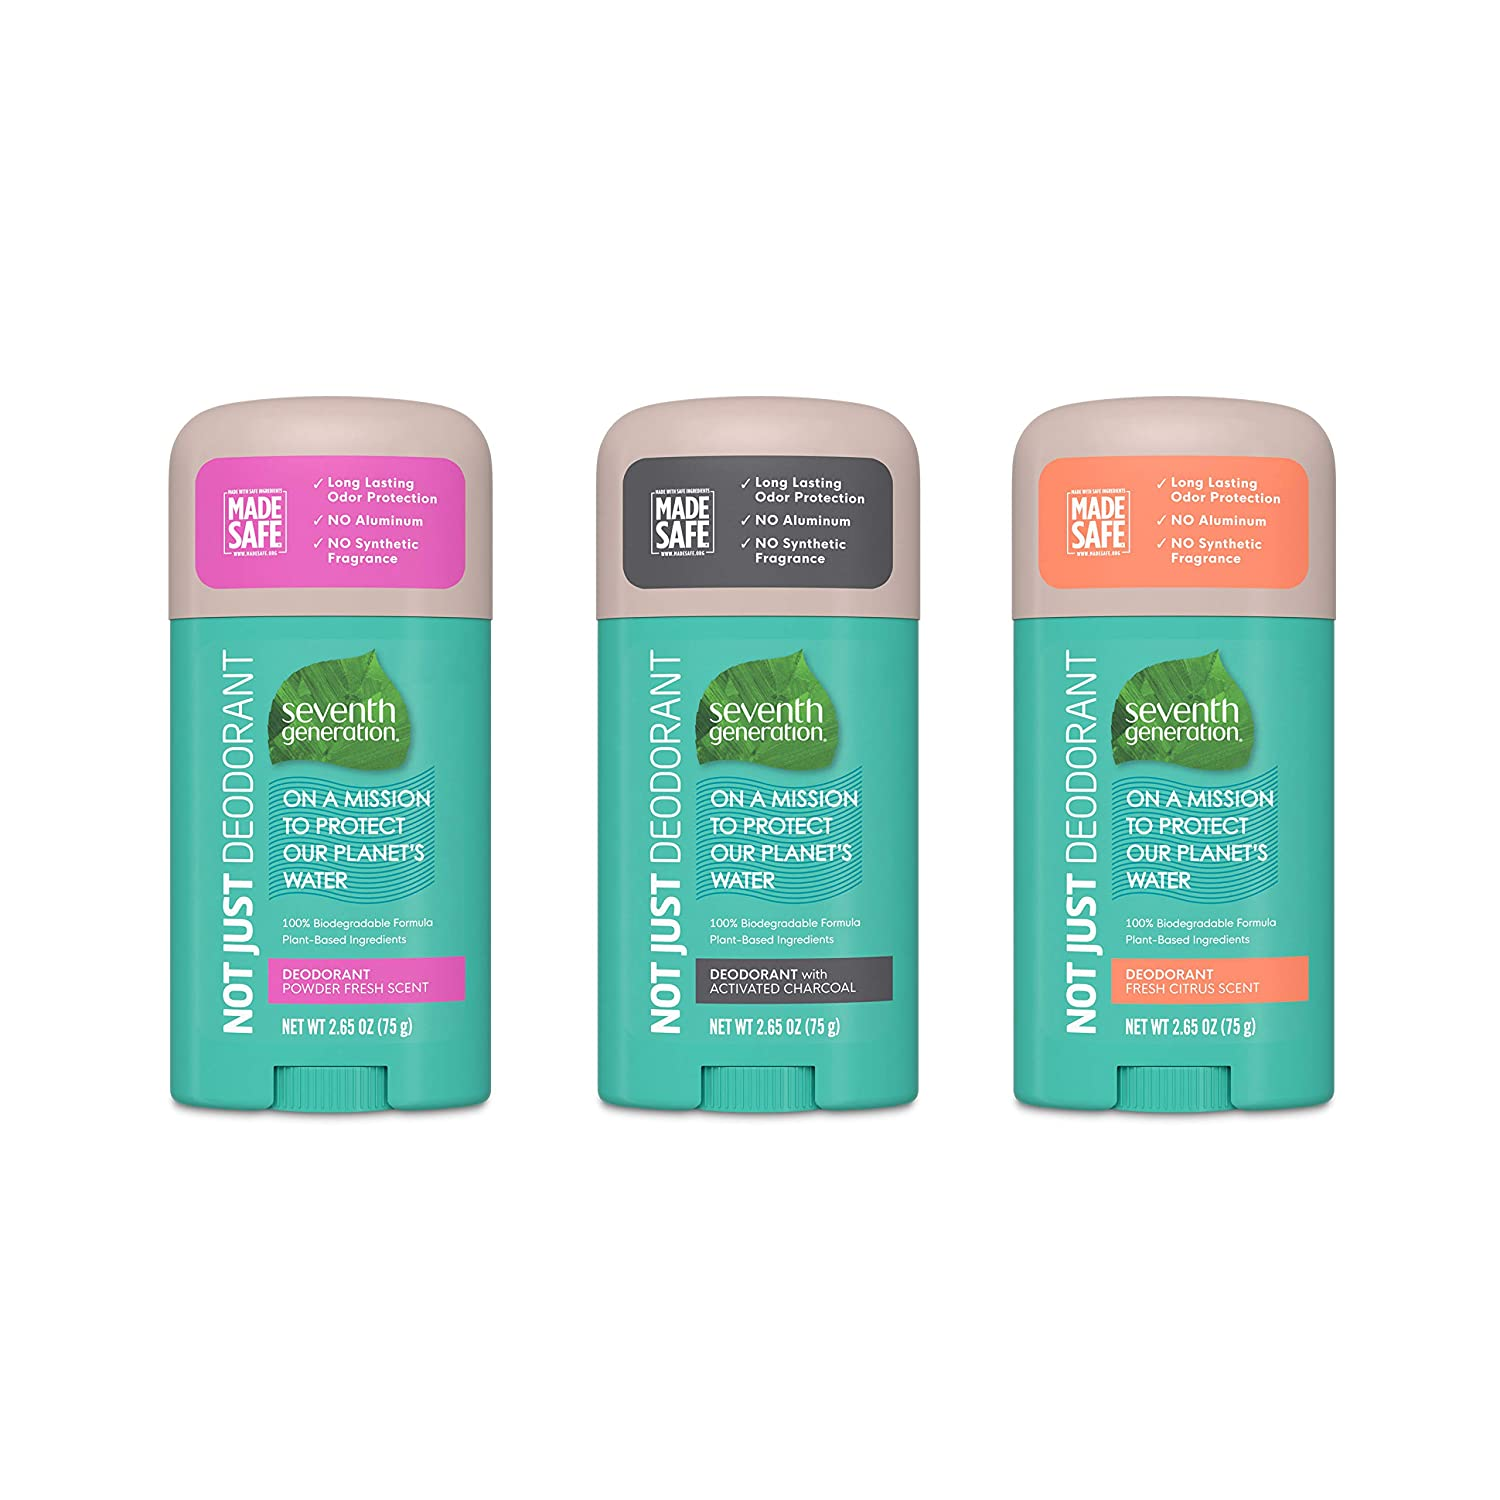 Seventh Generation Aluminum-Free Deodorant Variety Pack Powder Fresh, Activated Charcoal, Fresh Citrus Collection 2.65 oz 3 Count